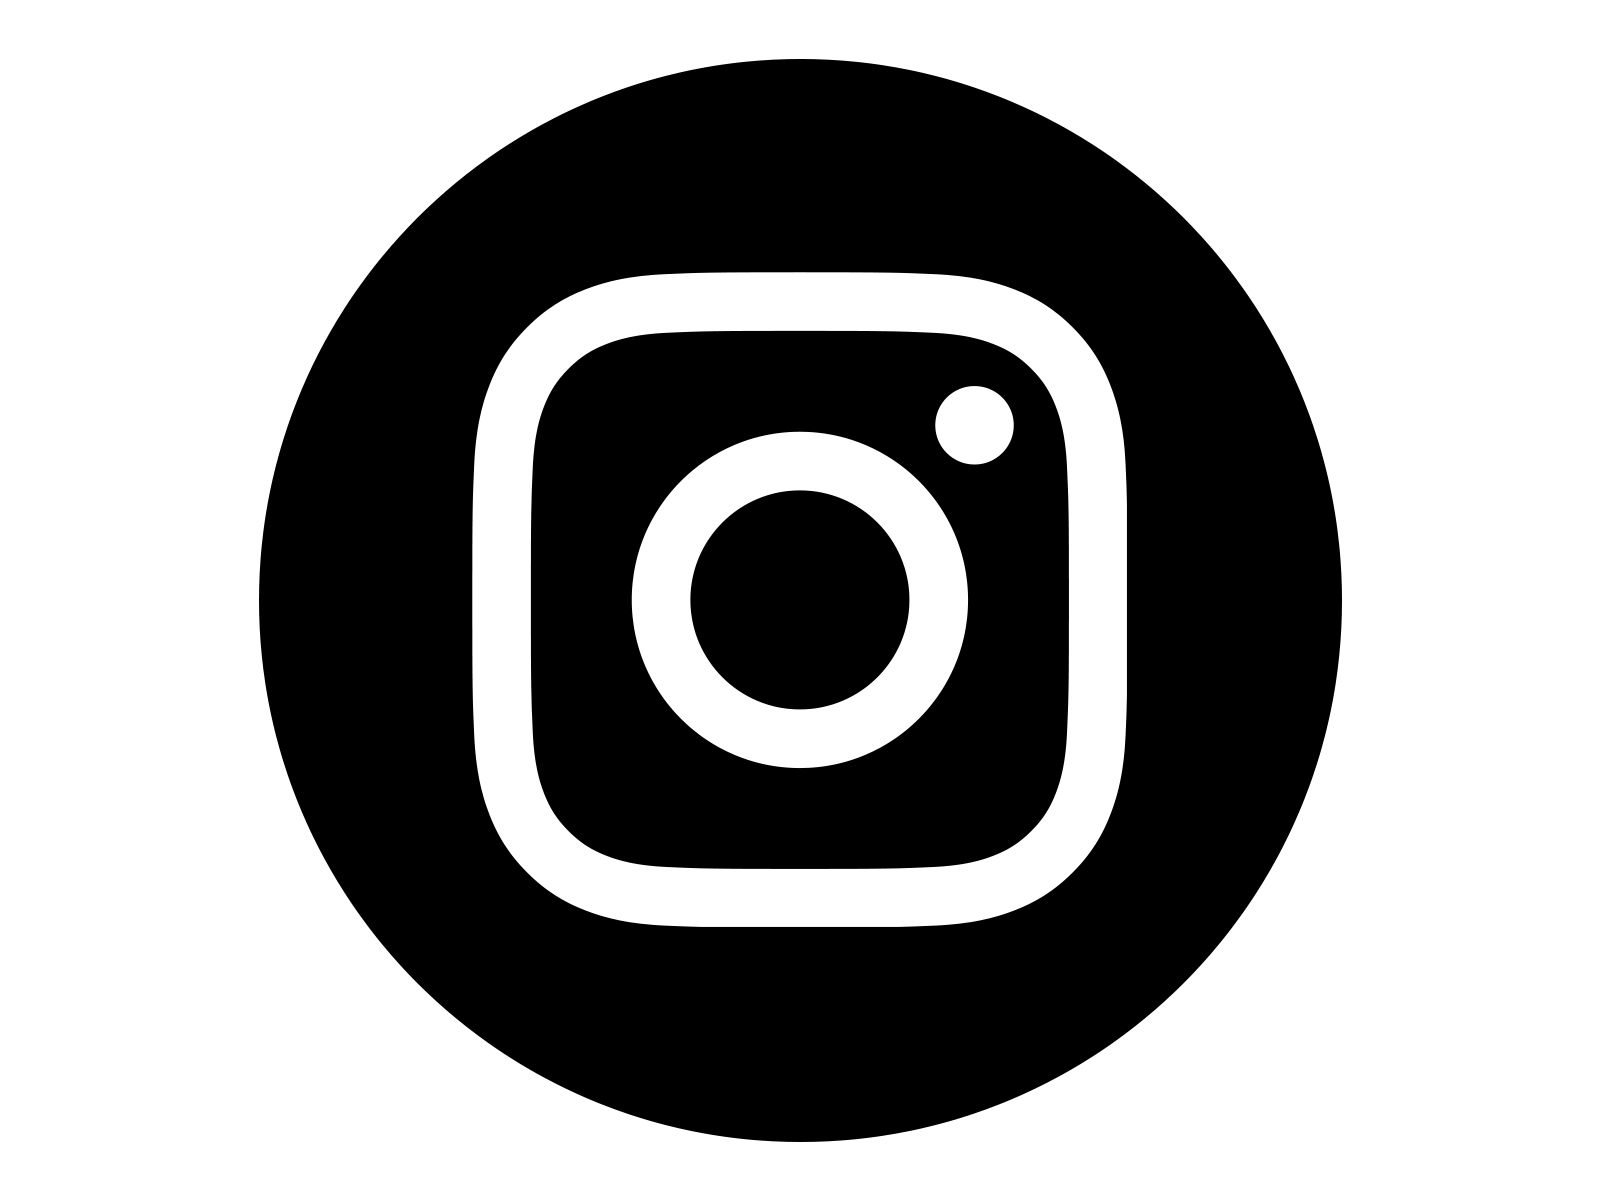 Instagram Icon White on Black Circle - Instagram Vector PNG